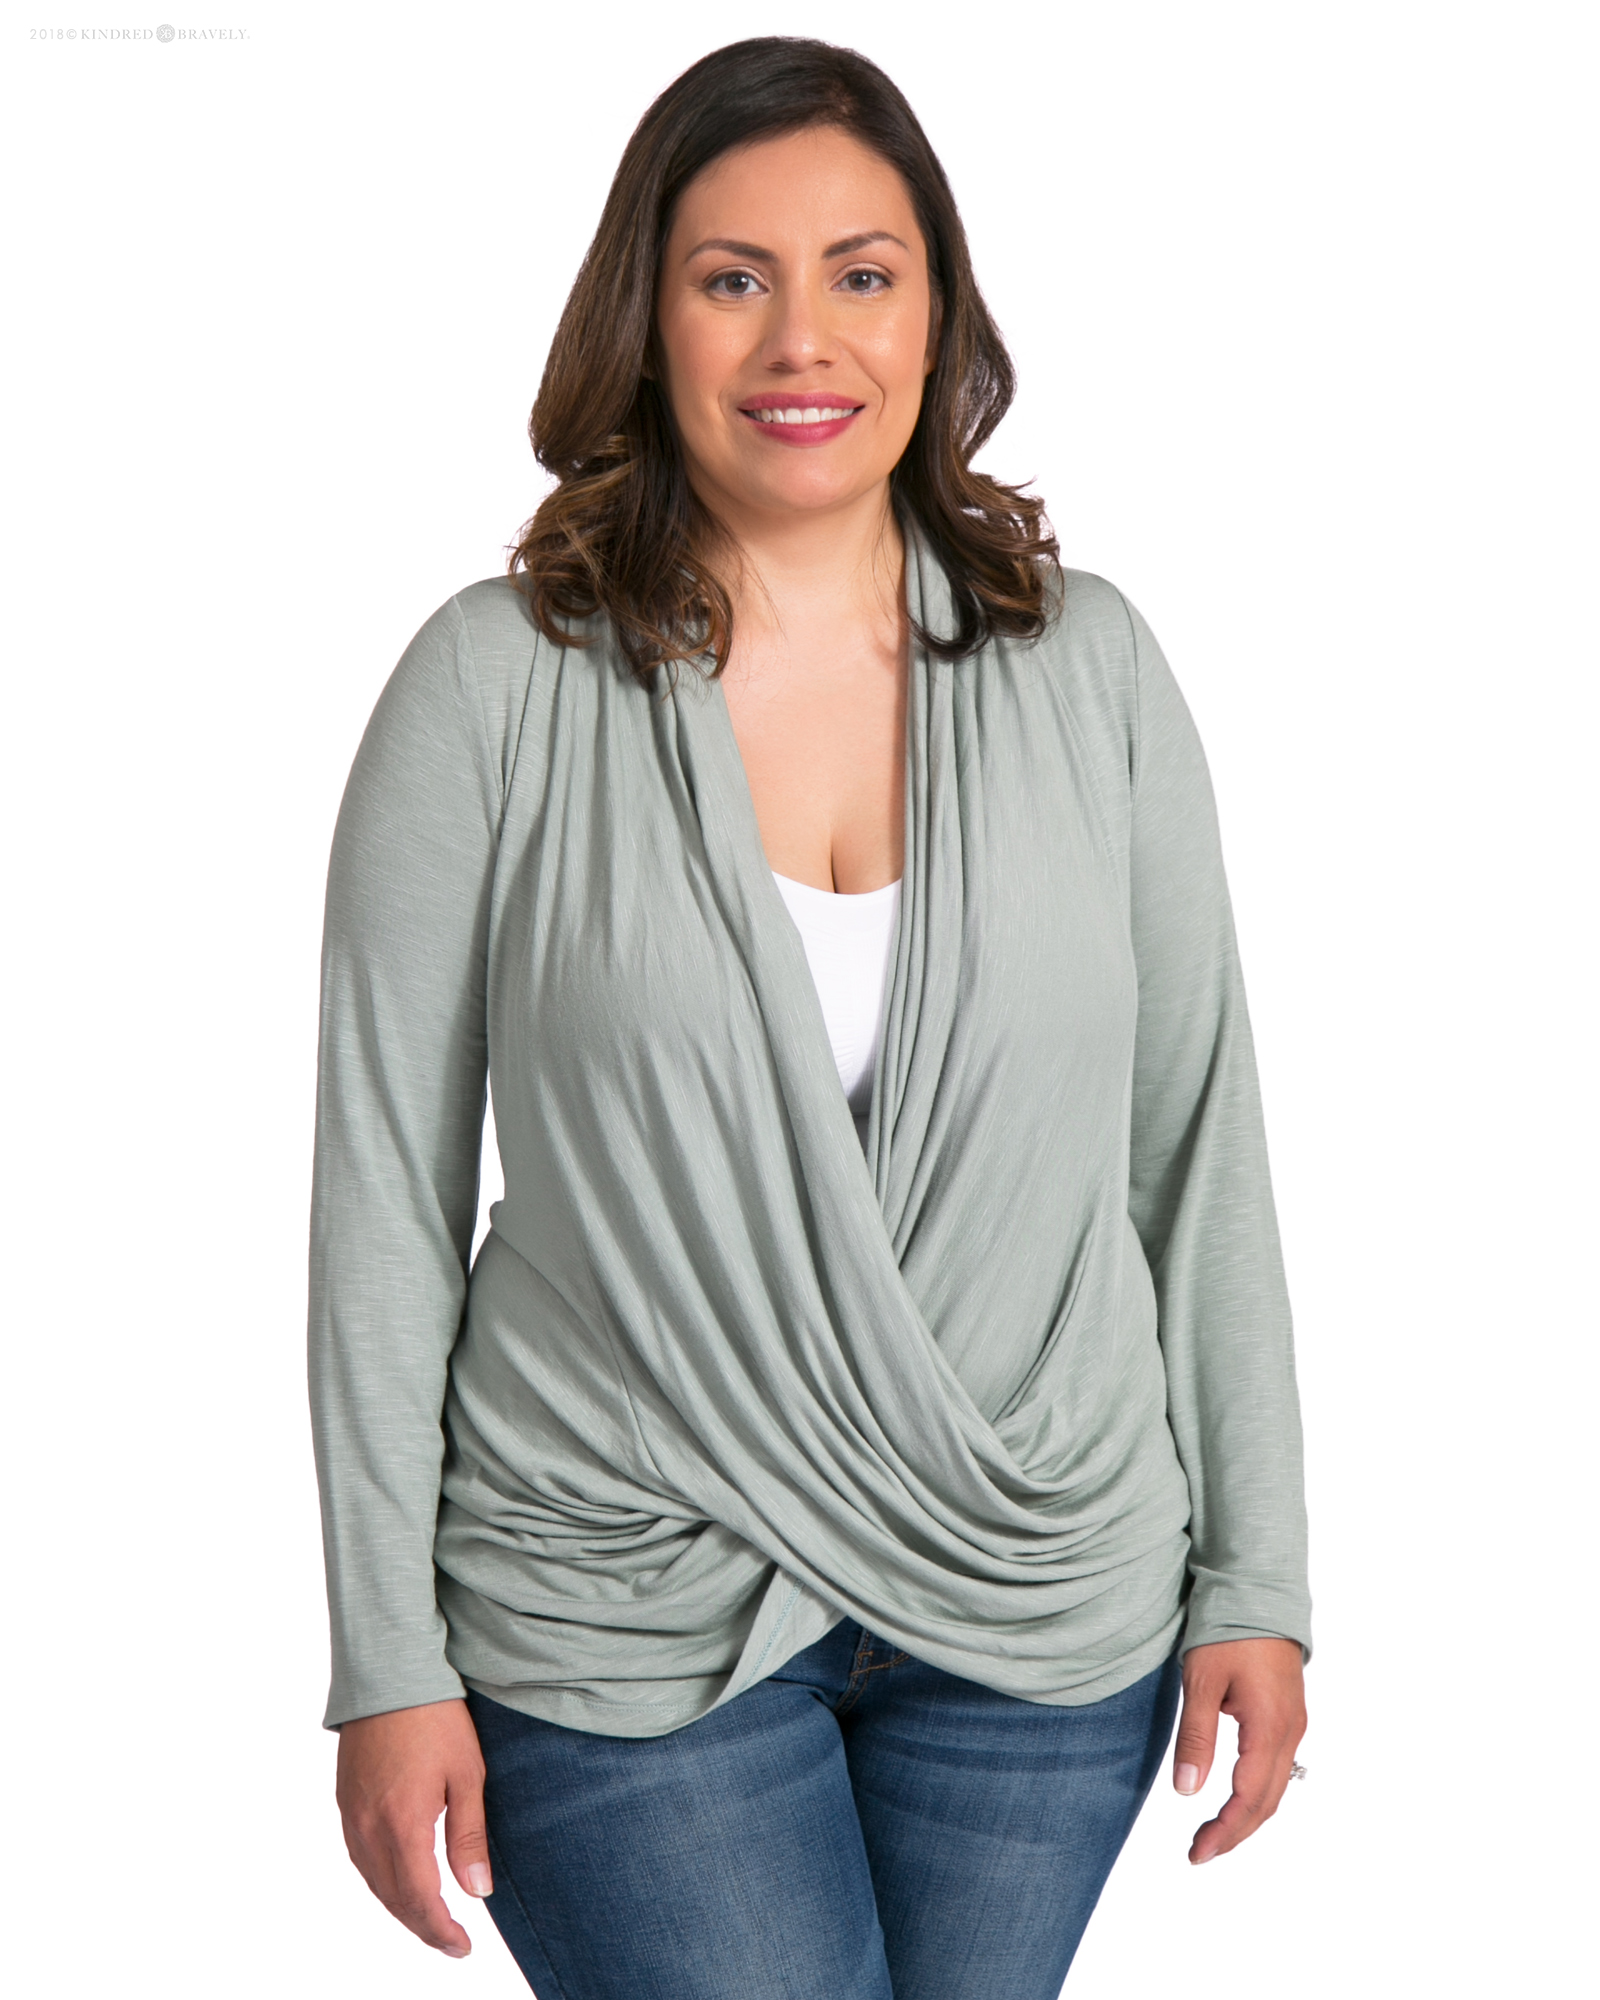 The Clara Criss Cross Nursing Top